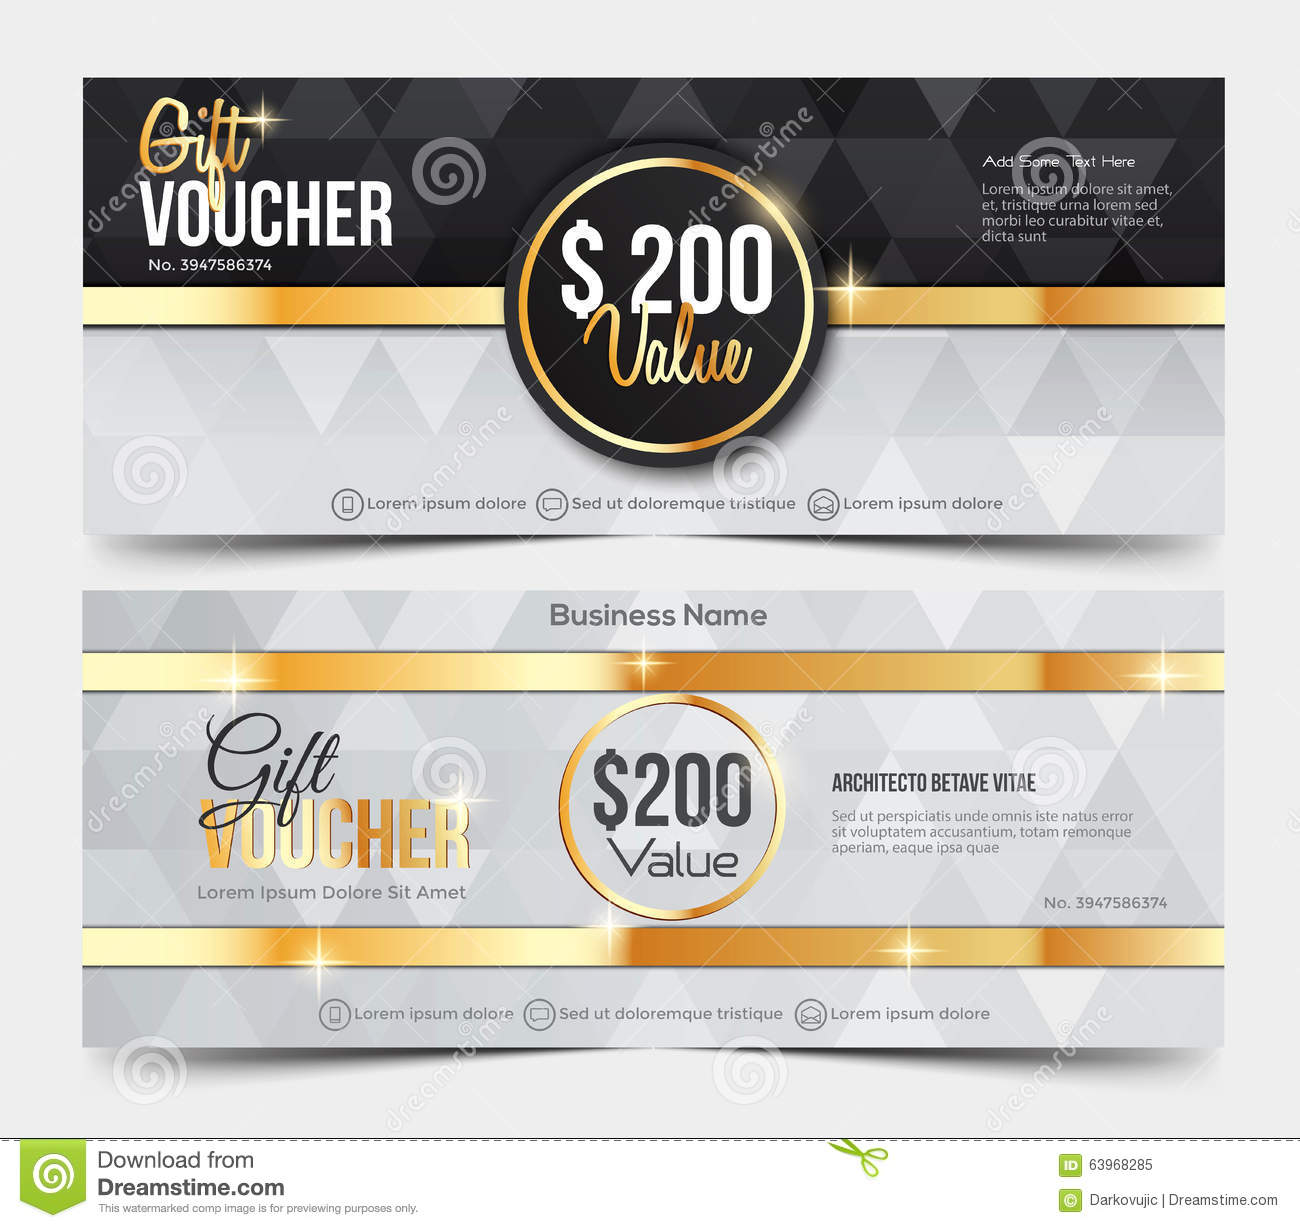 5 8 club coupons